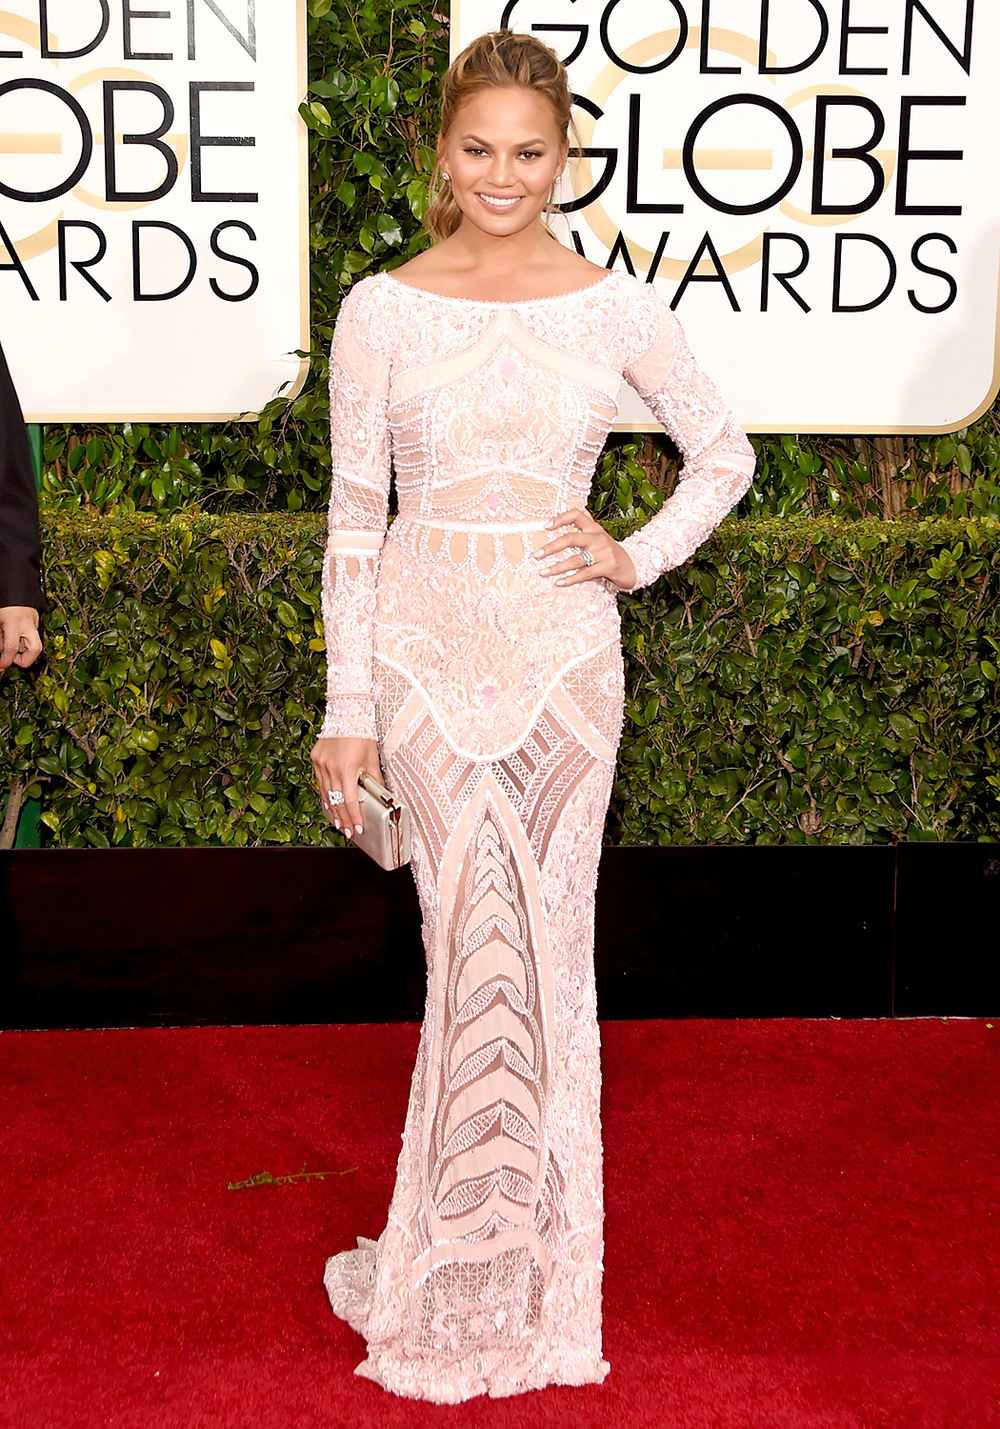 Chrissy Tiegan also in Zuhair Murad. What I would wear to the globes (LOL)